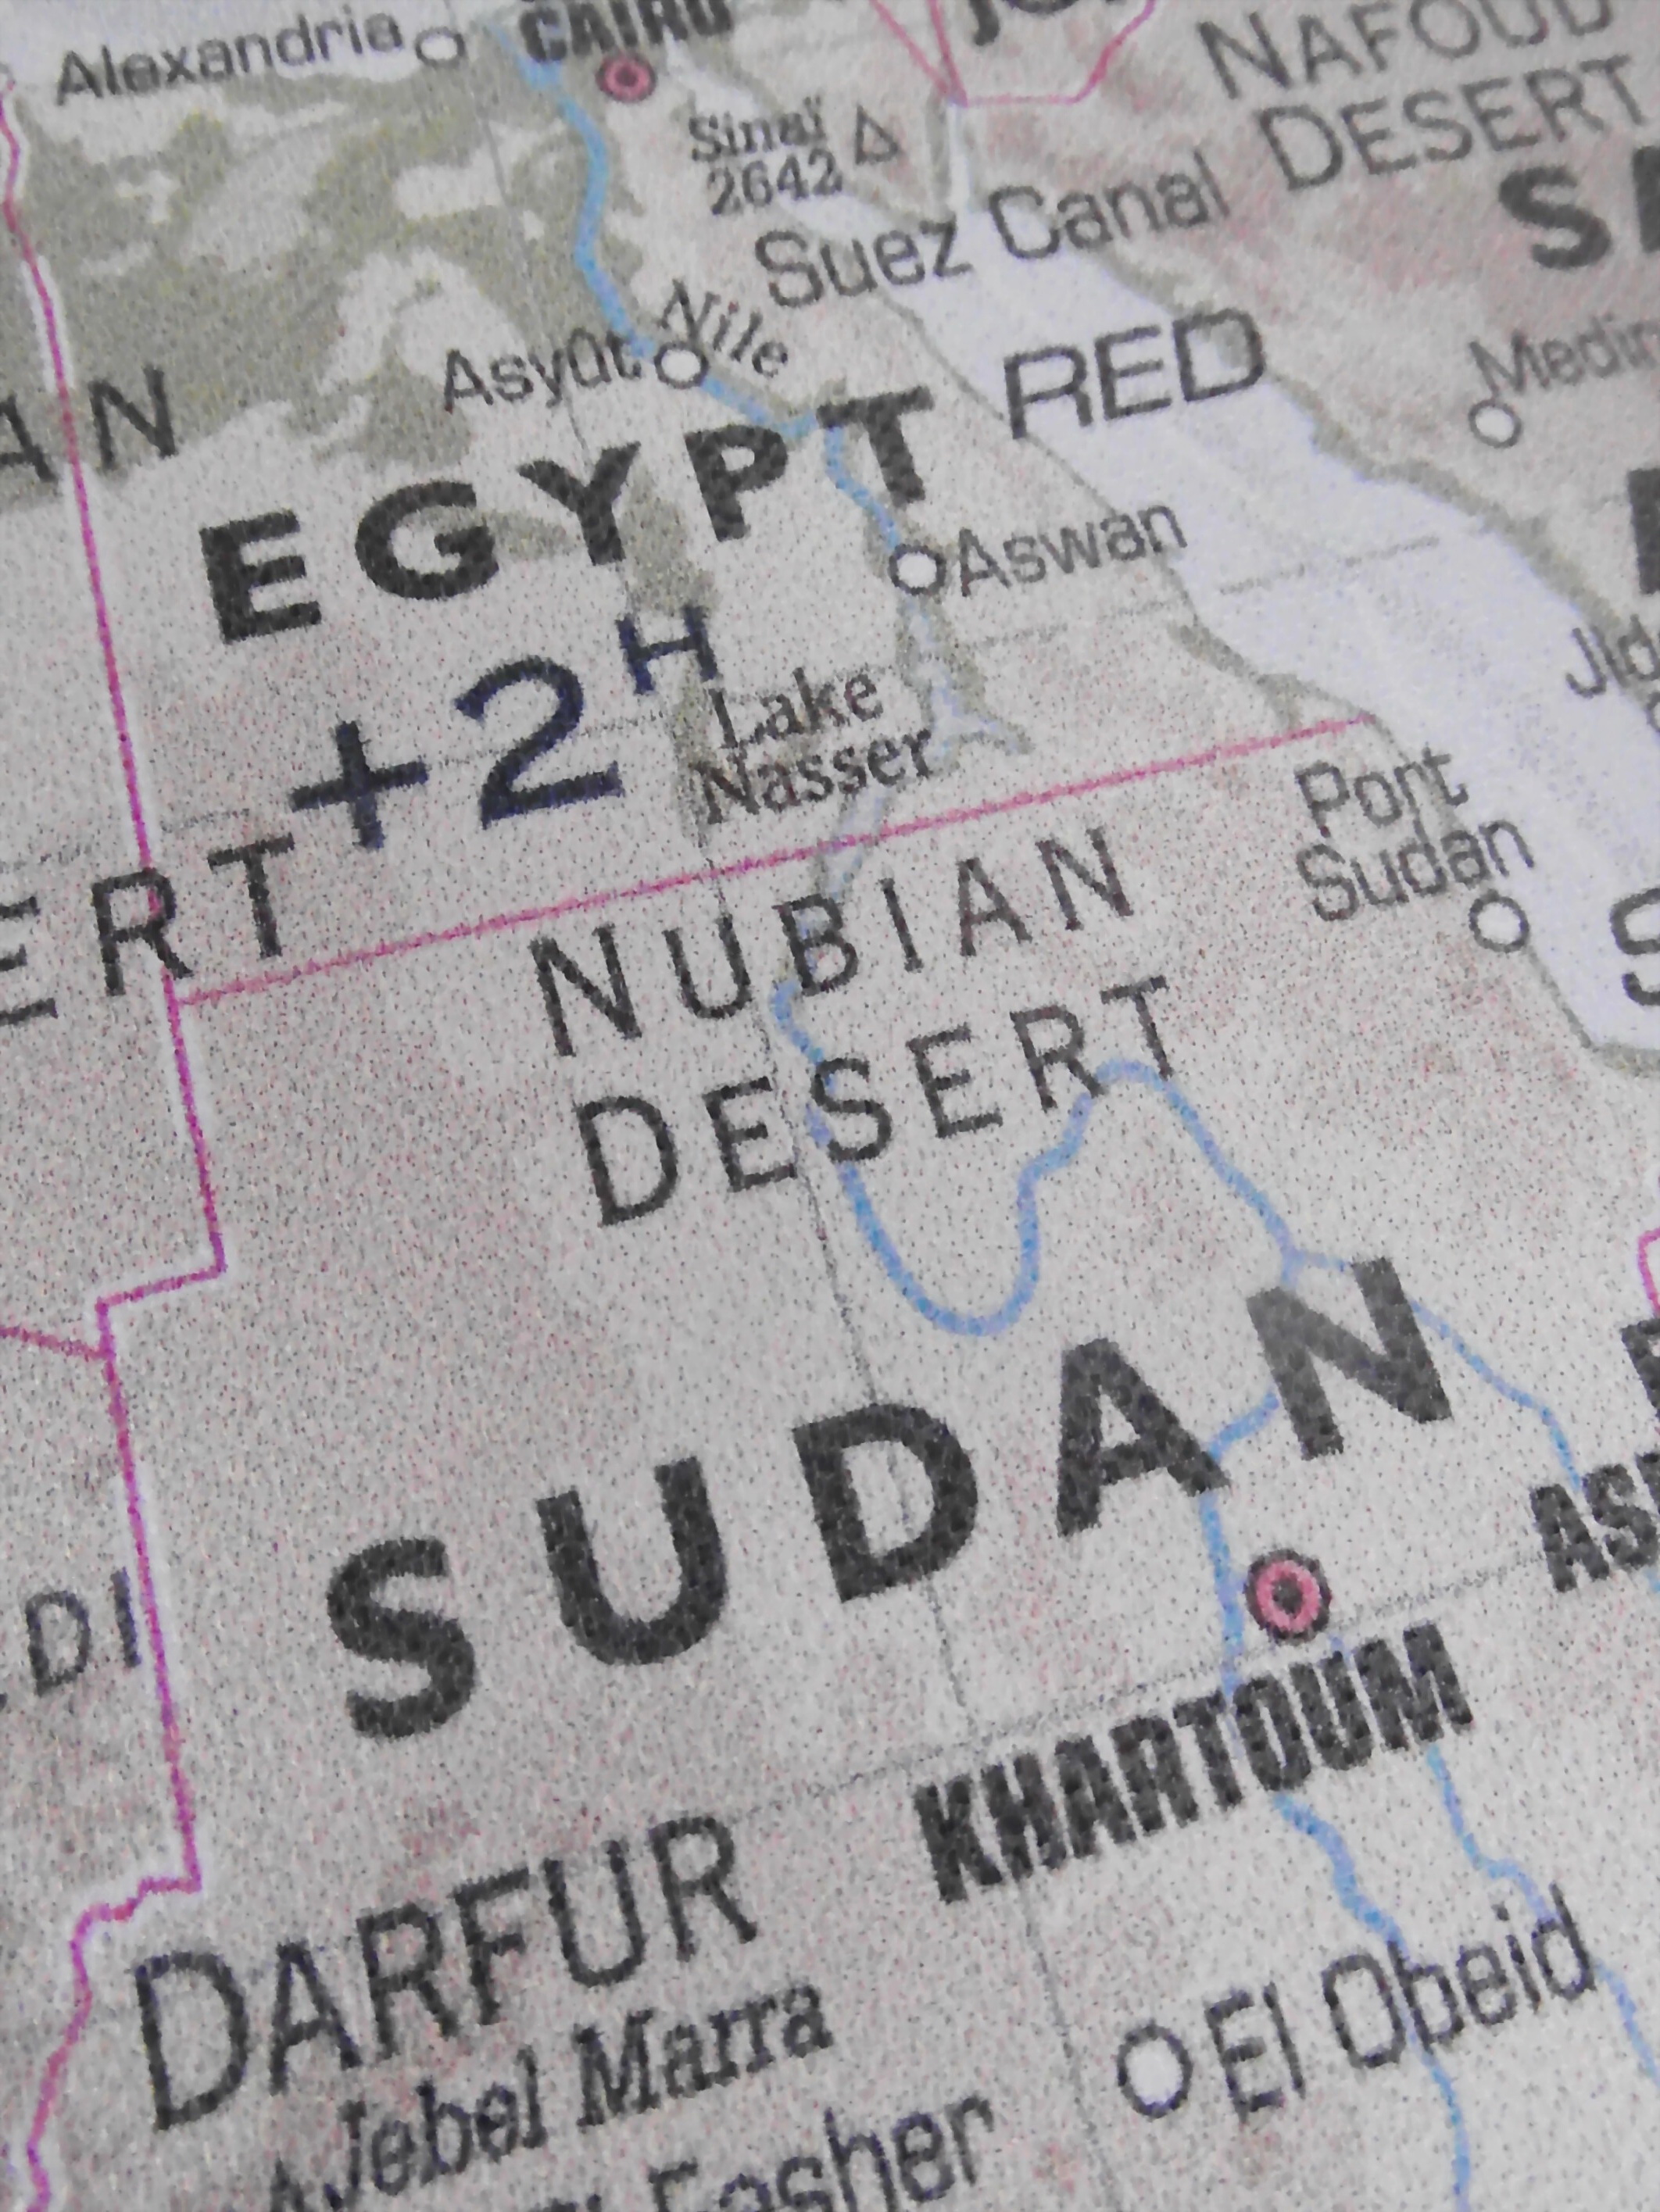 Egypt and sudan map photo